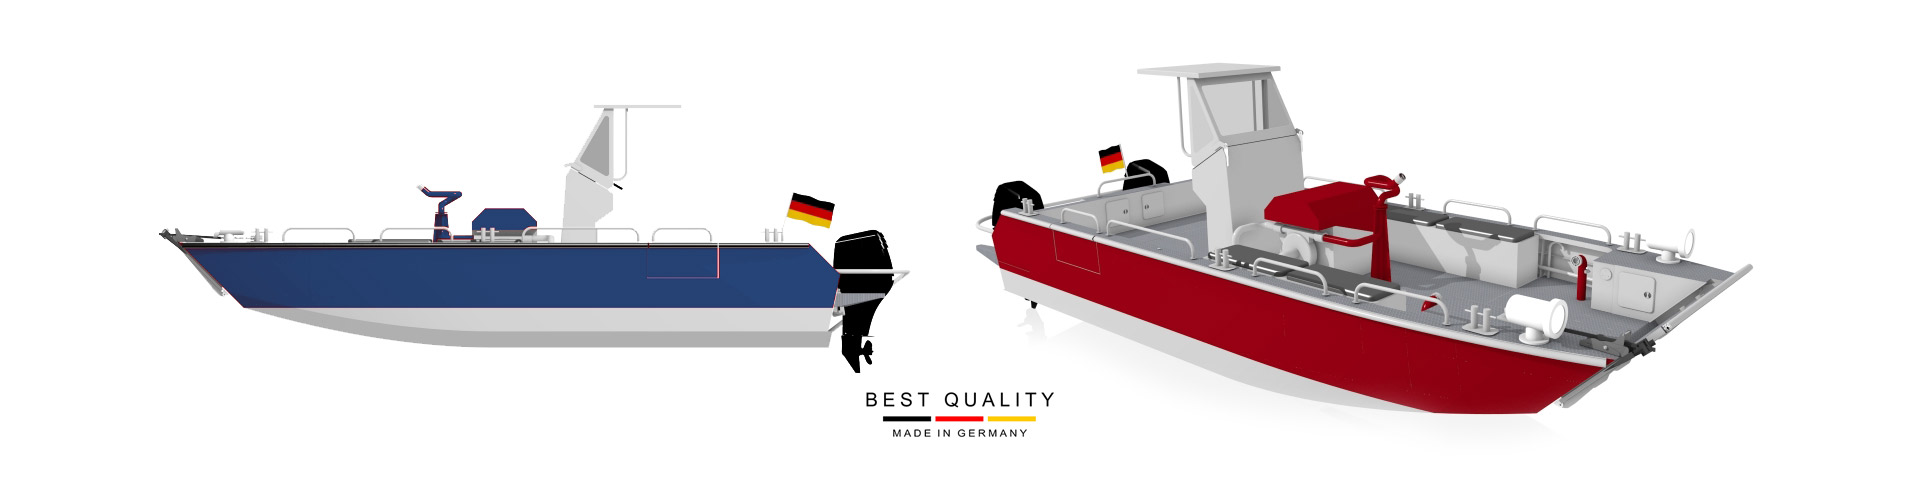 Aluminiumboats Made in Germany